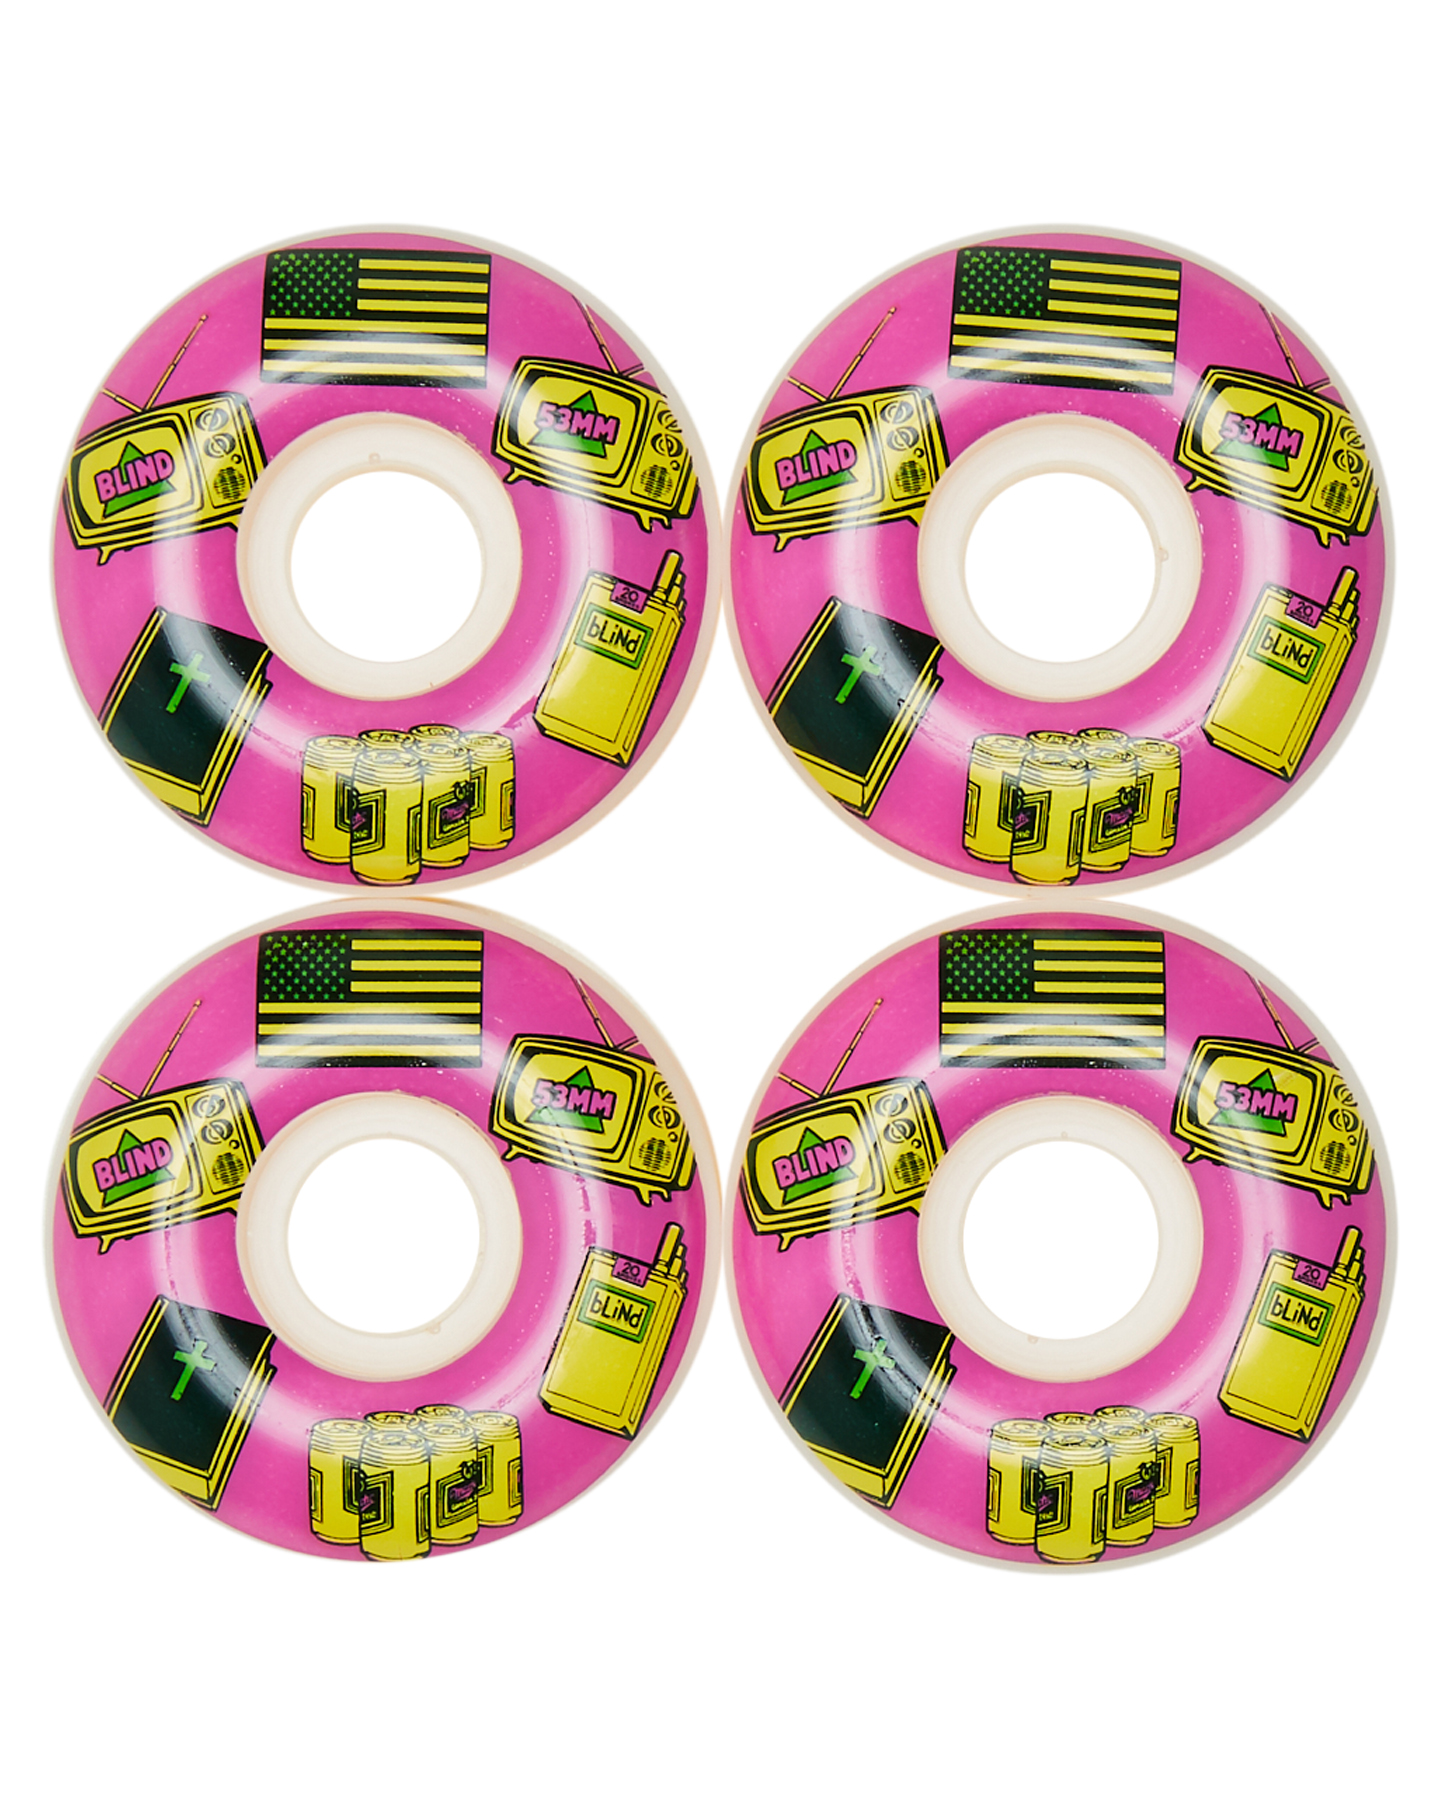 Blind American Icons 53 Mm Wheel Pink